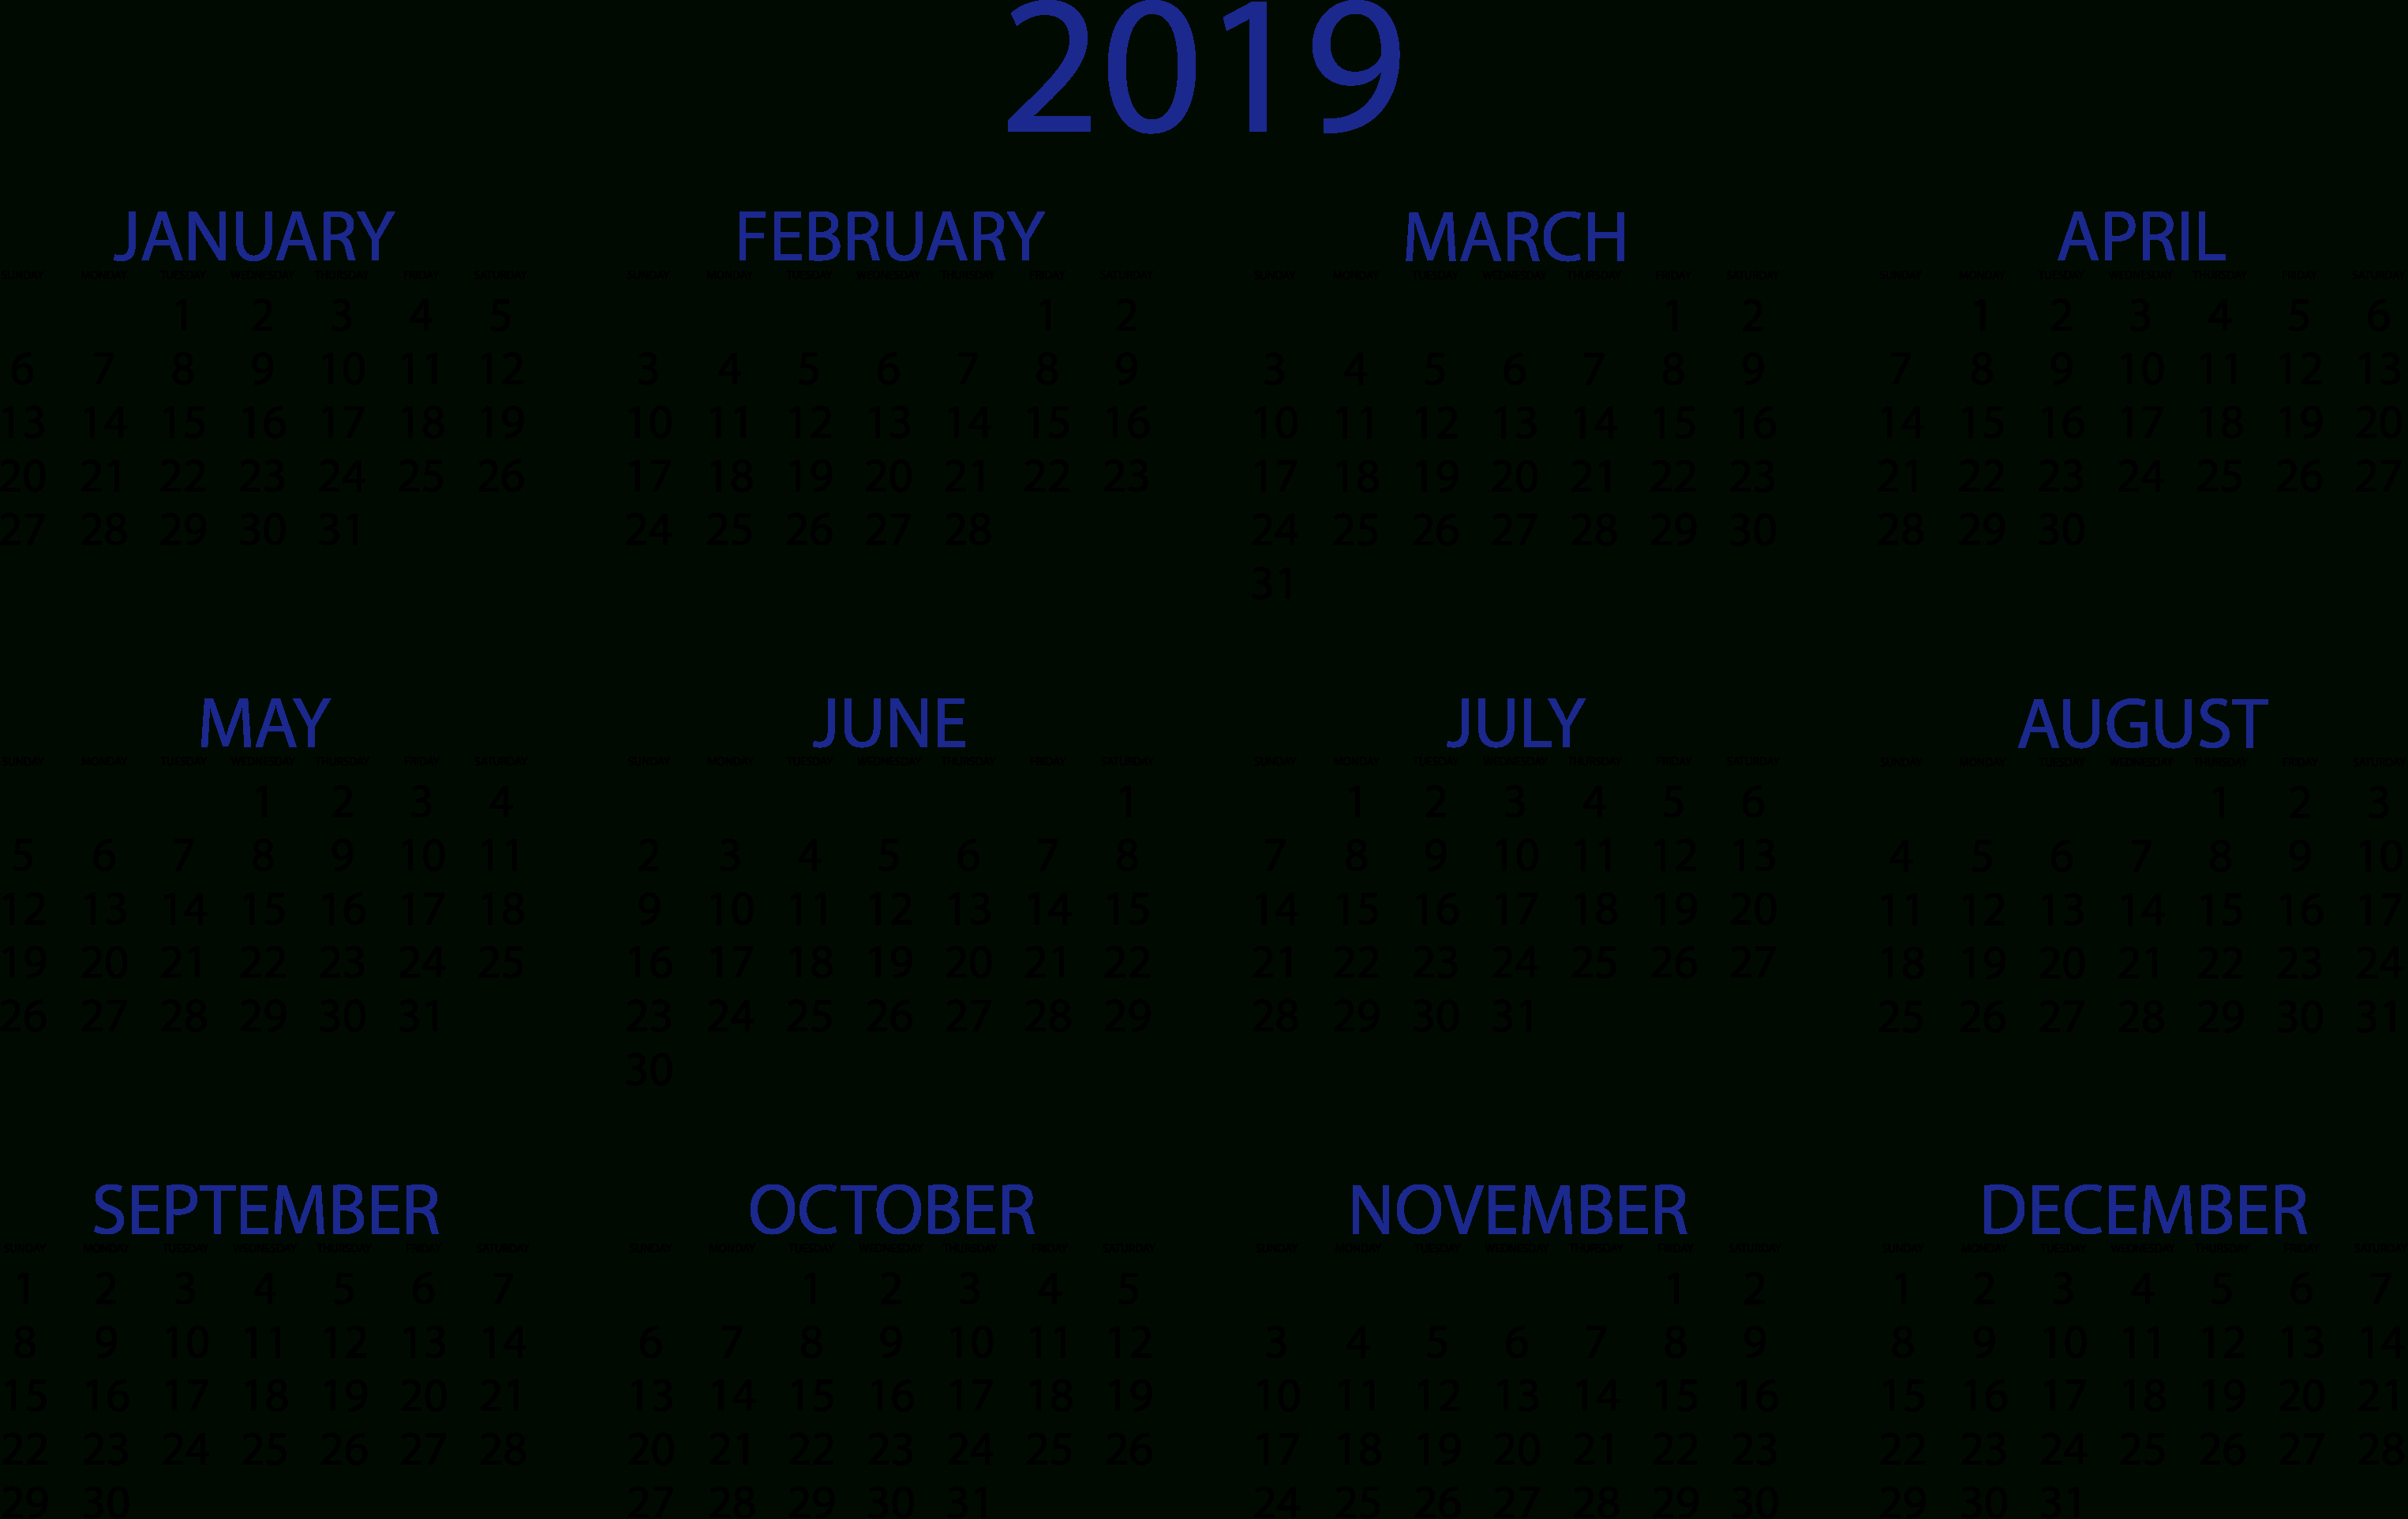 2019 Calendars Download Pdf Templates Calendar 0F 2019